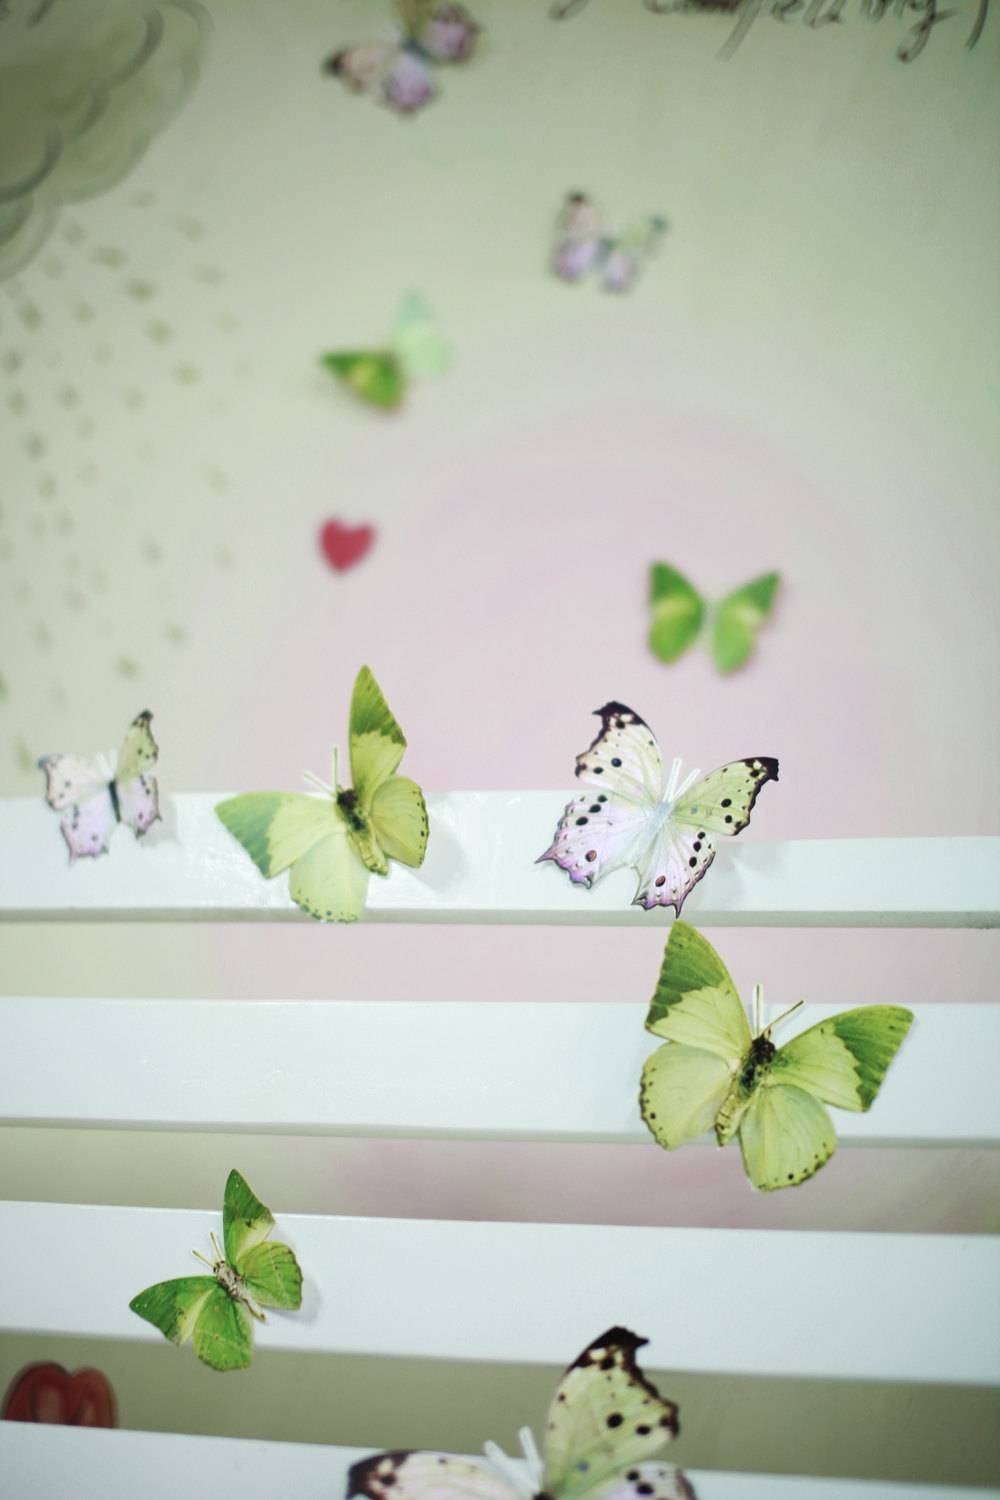 12 3D Wall Butterflies3D Butterfly Wall Art Decoration Regarding Most Up To Date Butterflies 3D Wall Art (View 2 of 20)